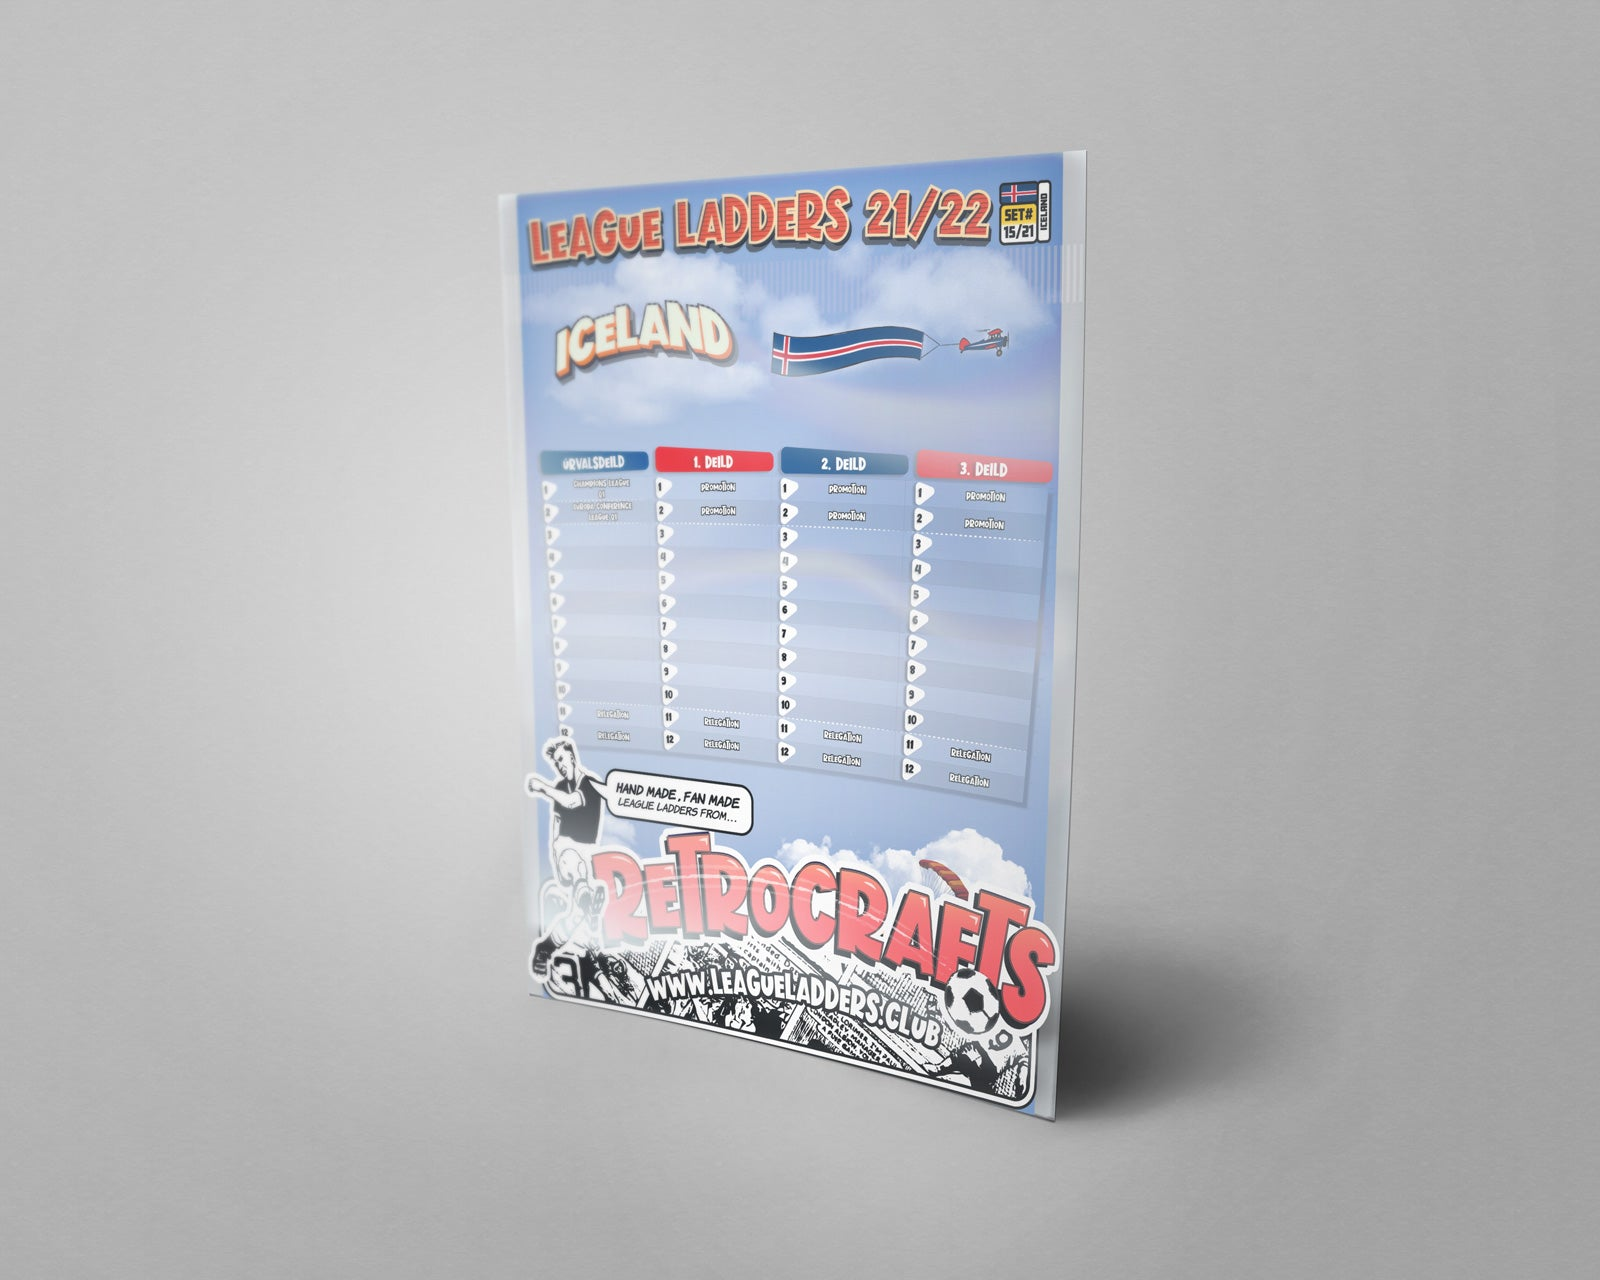 Iceland Football League 2021/22 Season League Ladders Set#15/21